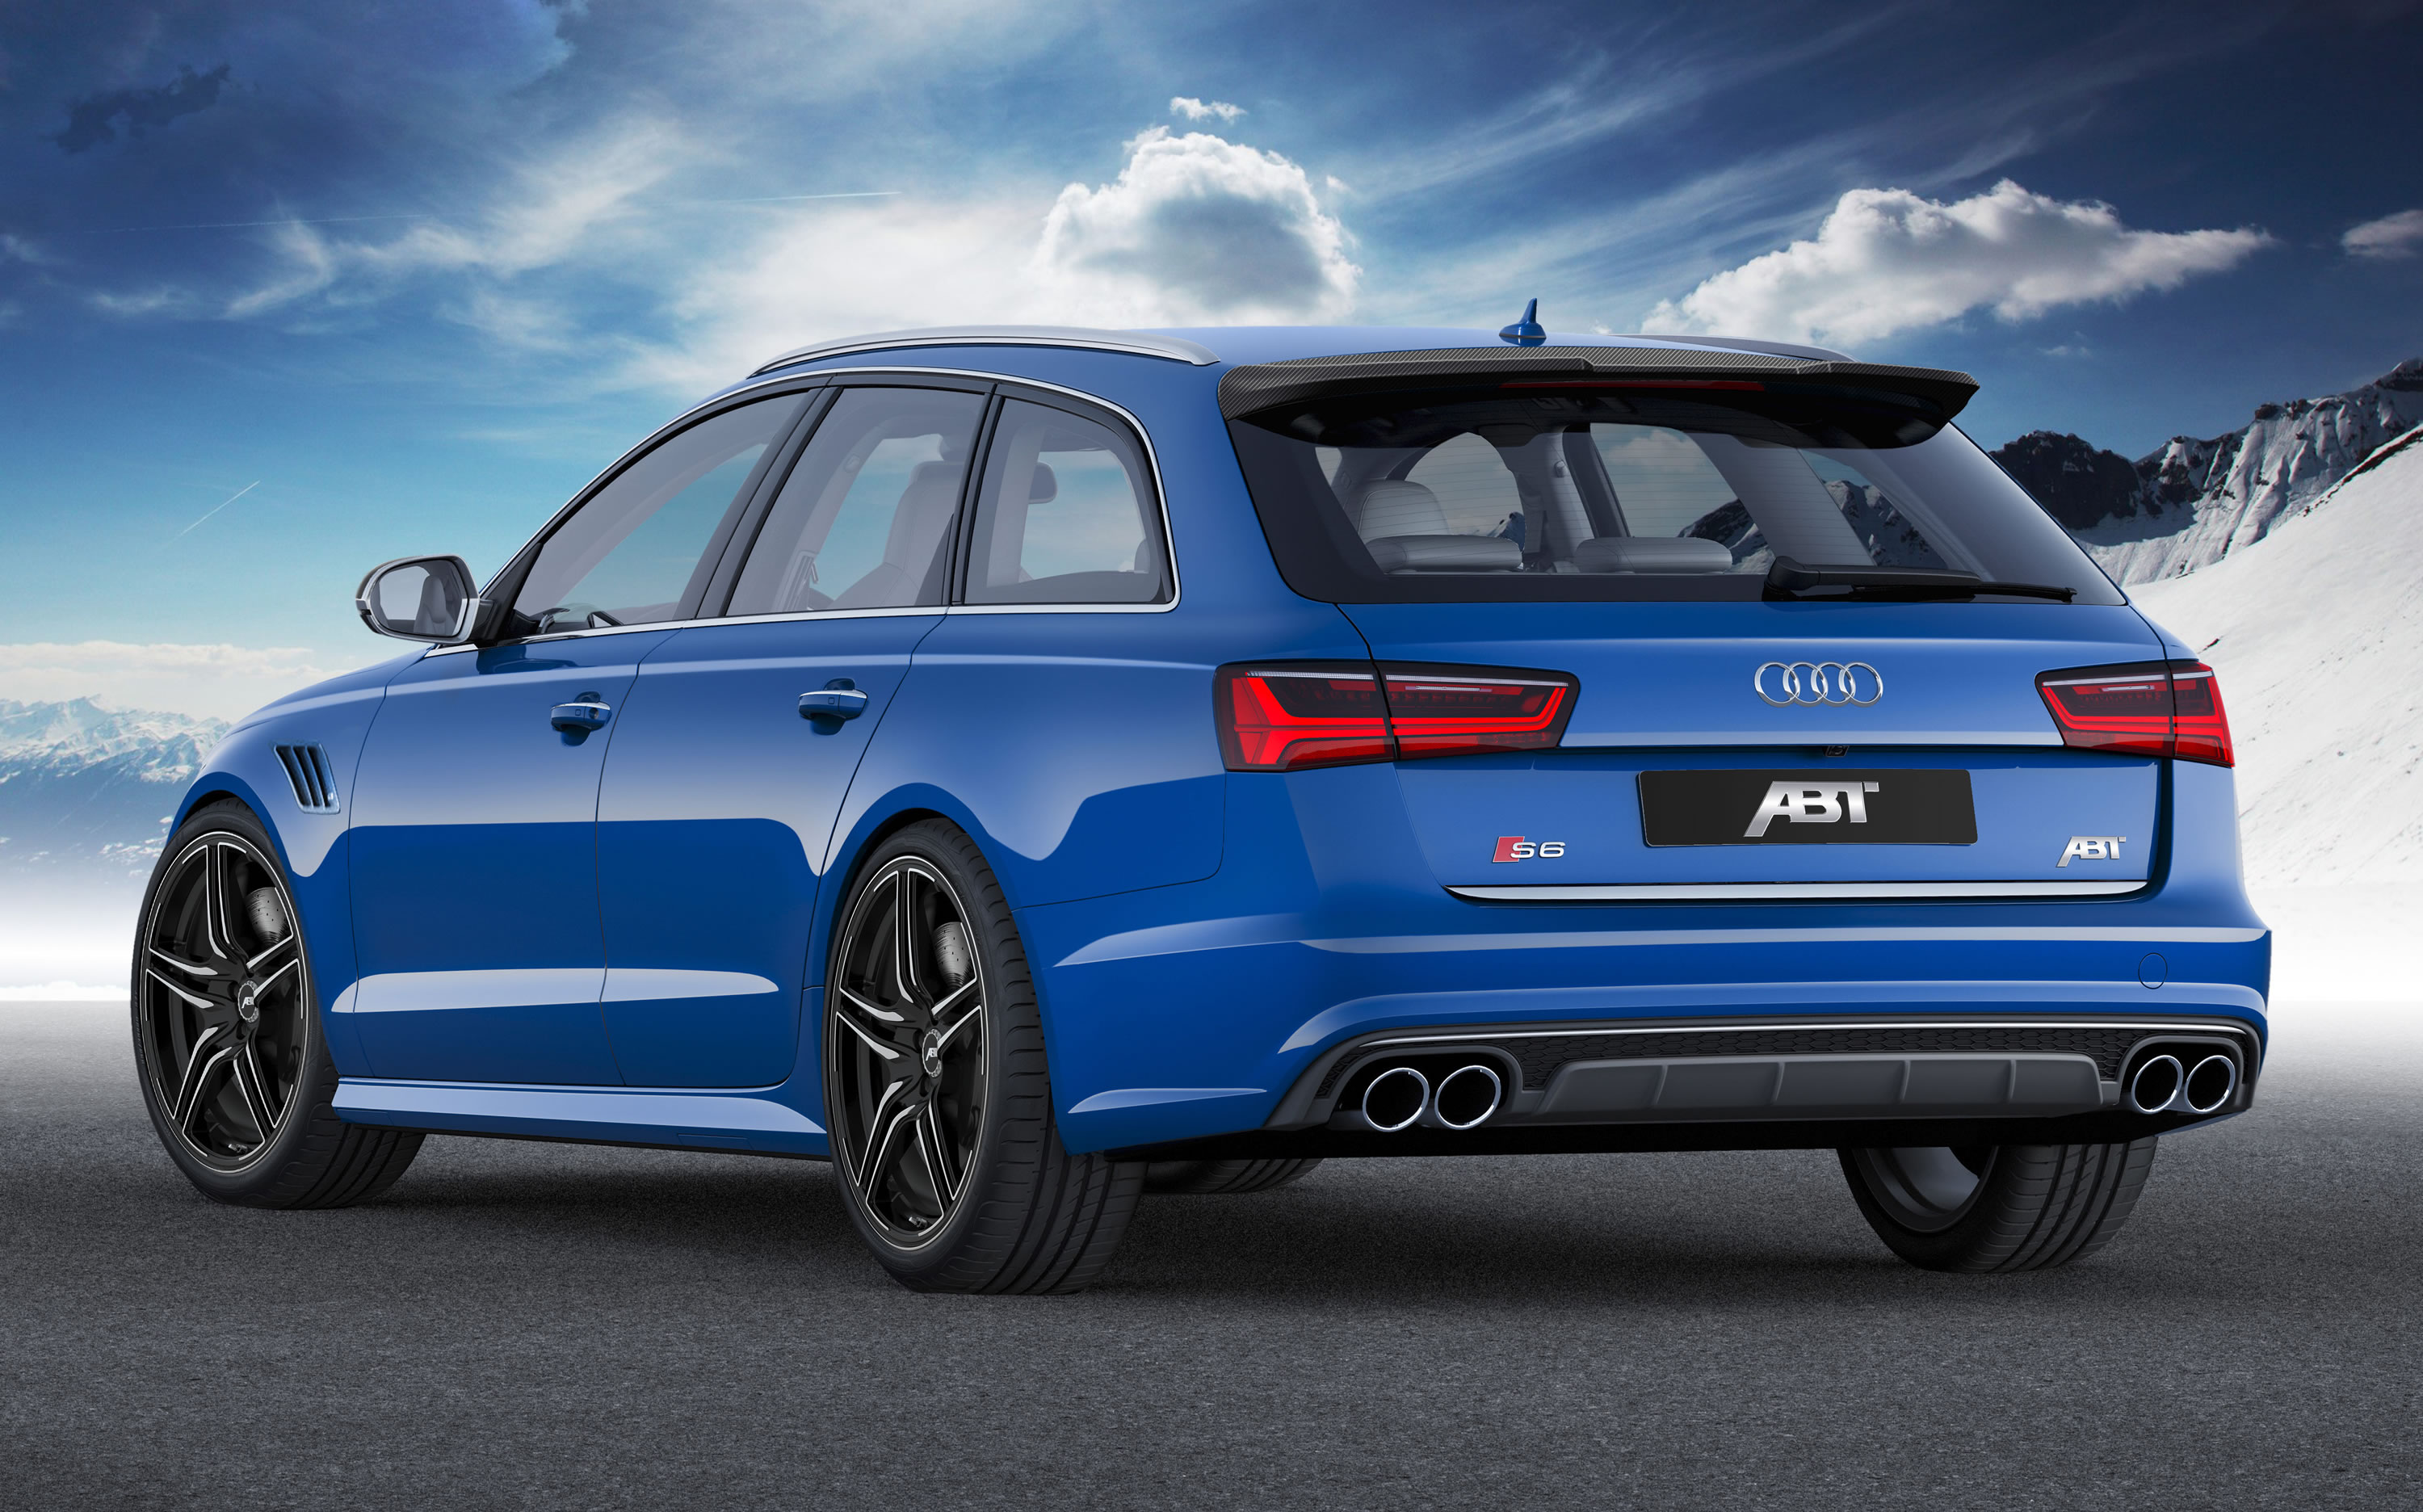 2015 Audi S6 Avant by ABT Photos, Specs and Review - RS